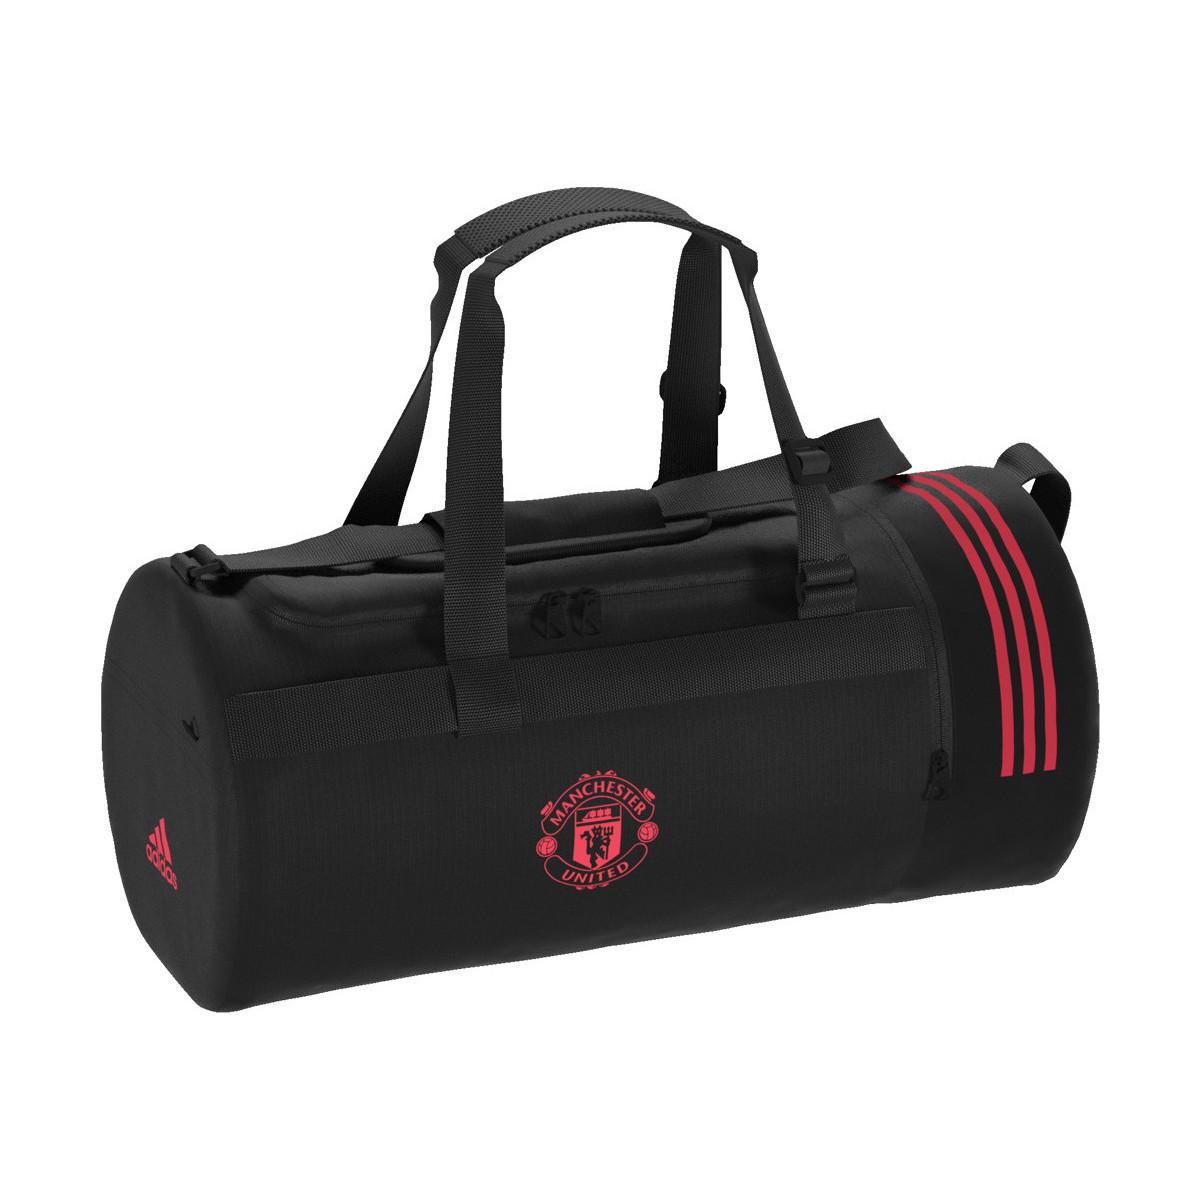 2bb8ae7f42 Adidas - Black Manchester United Duffle Bag femmes Sac de sport en Noir for  Men -. Afficher en plein écran